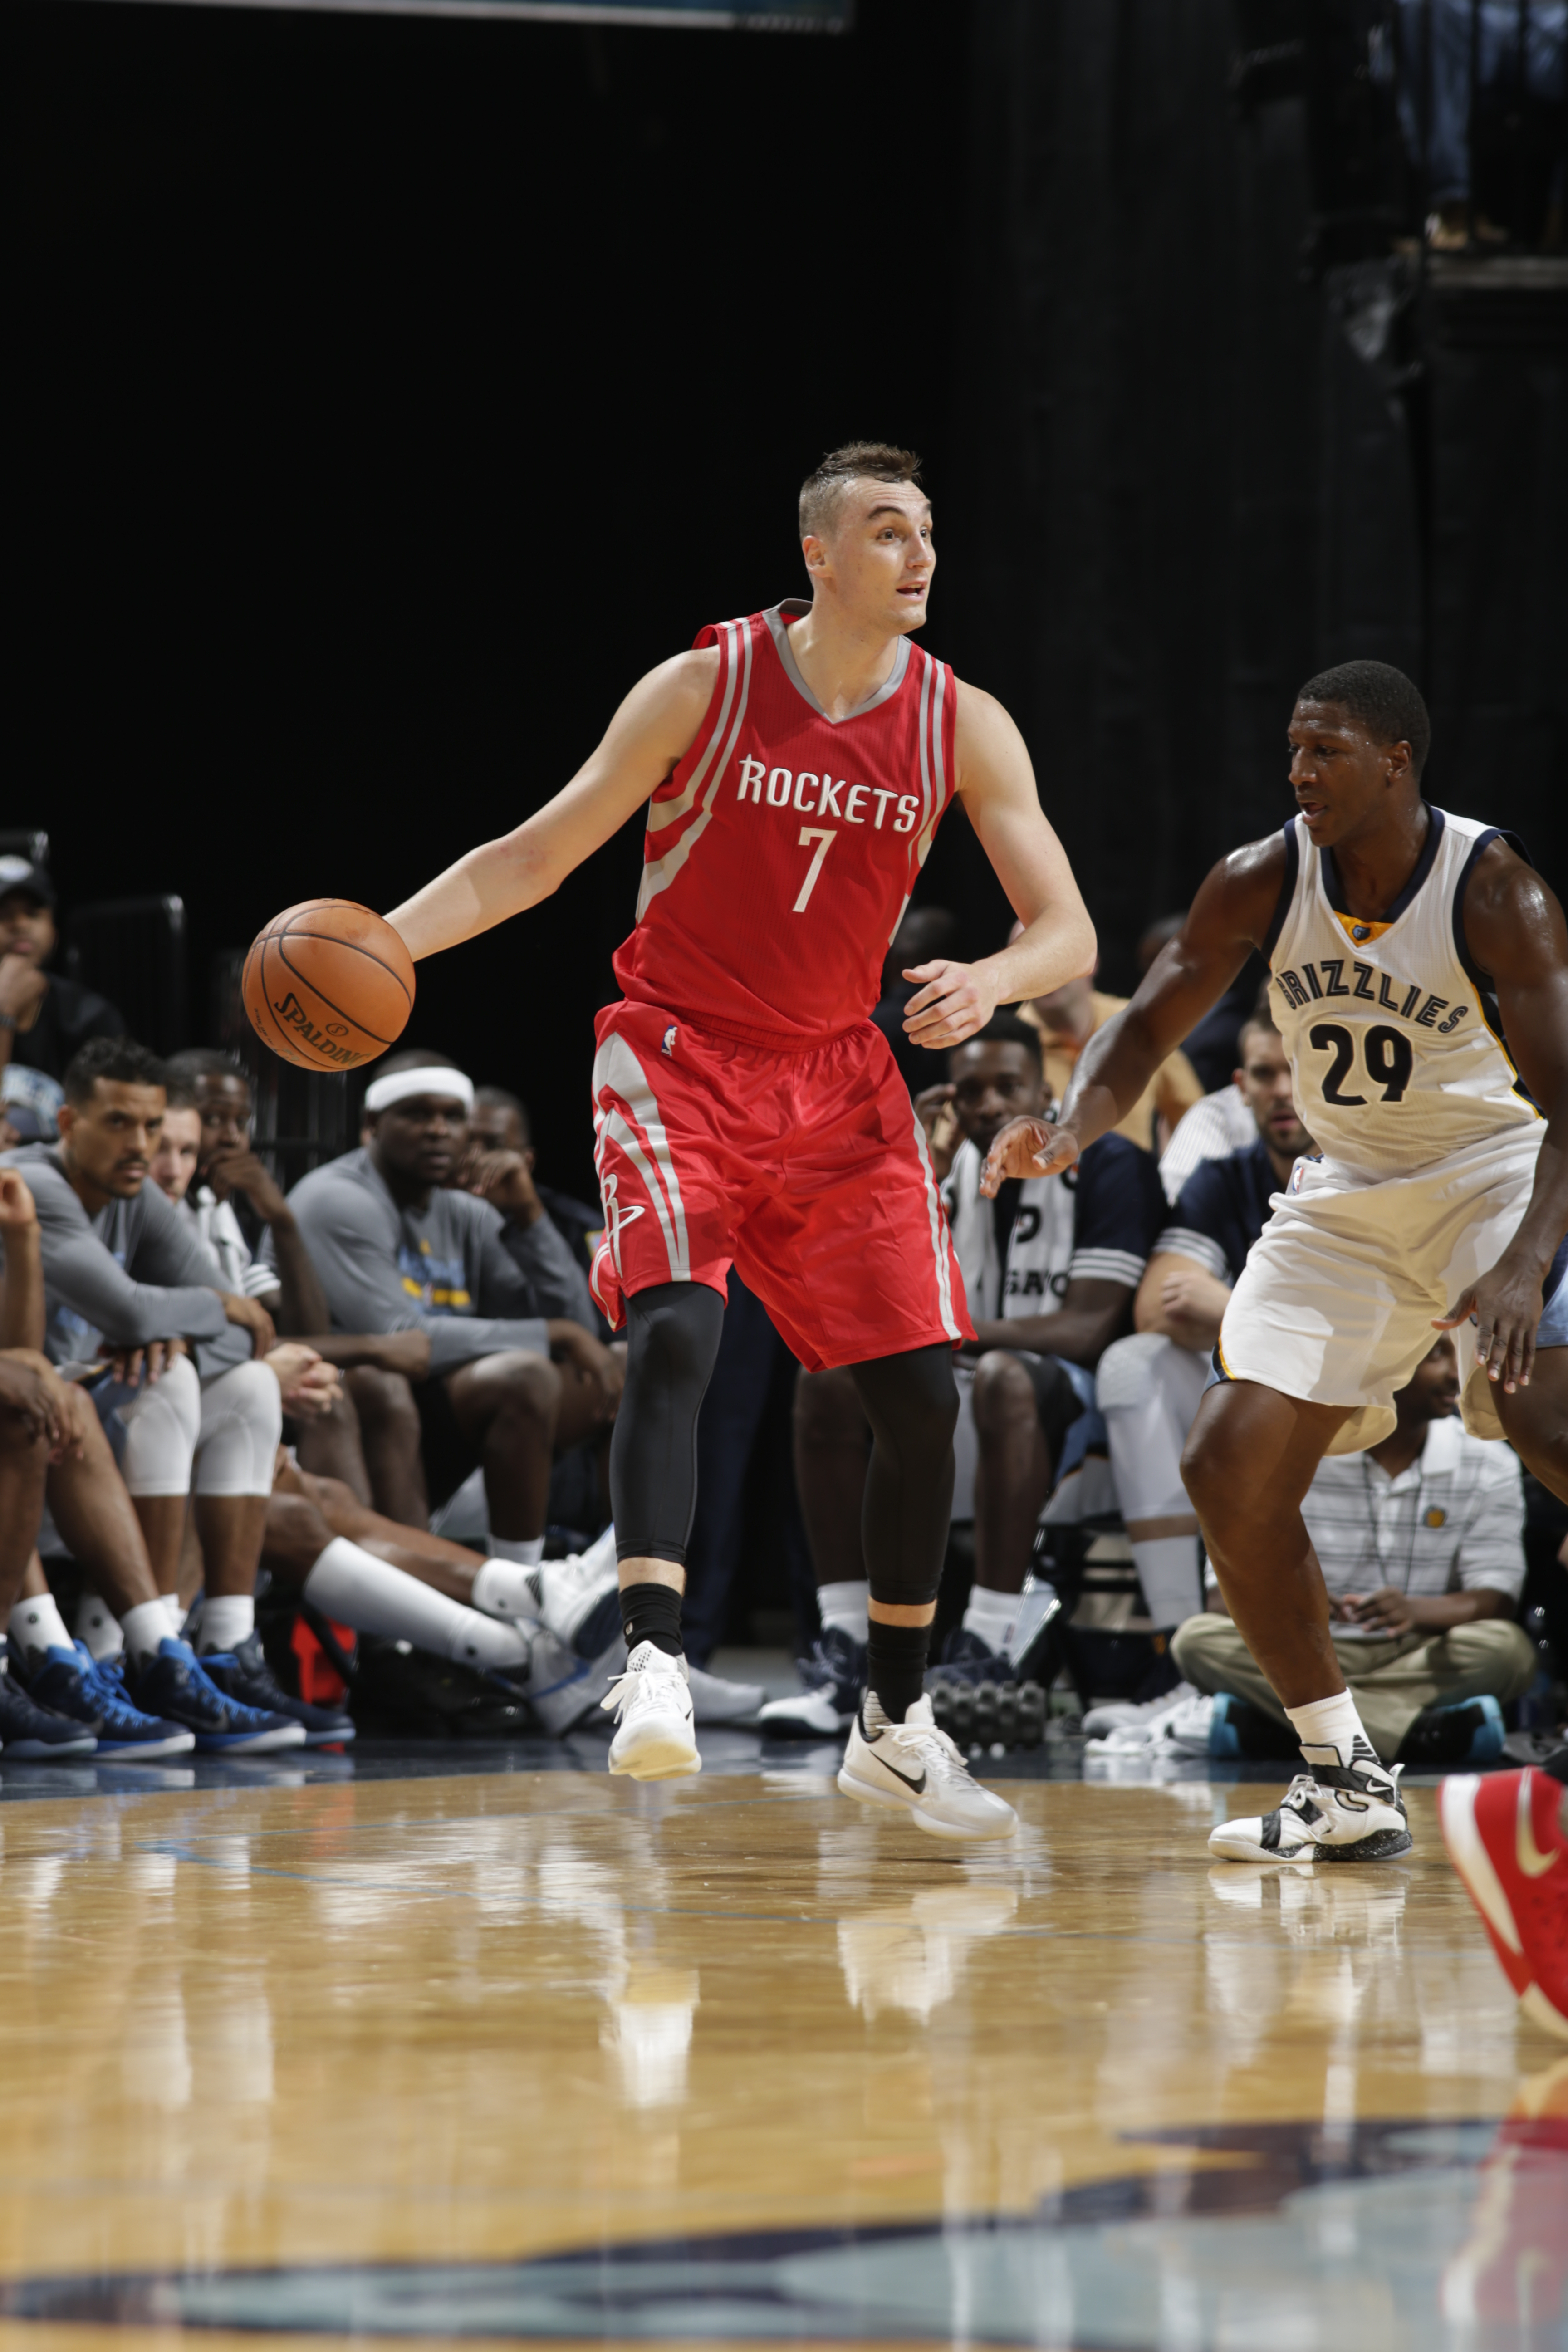 MEMPHIS, TN - OCTOBER 6:  Sam Dekker #7 of the Houston Rockets handles the ball against the Memphis Grizzlies during a preseason game on October 6, 2015 at FedExForum in Memphis, Tennessee. (Photo by Jeff Haynes/NBAE via Getty Images)